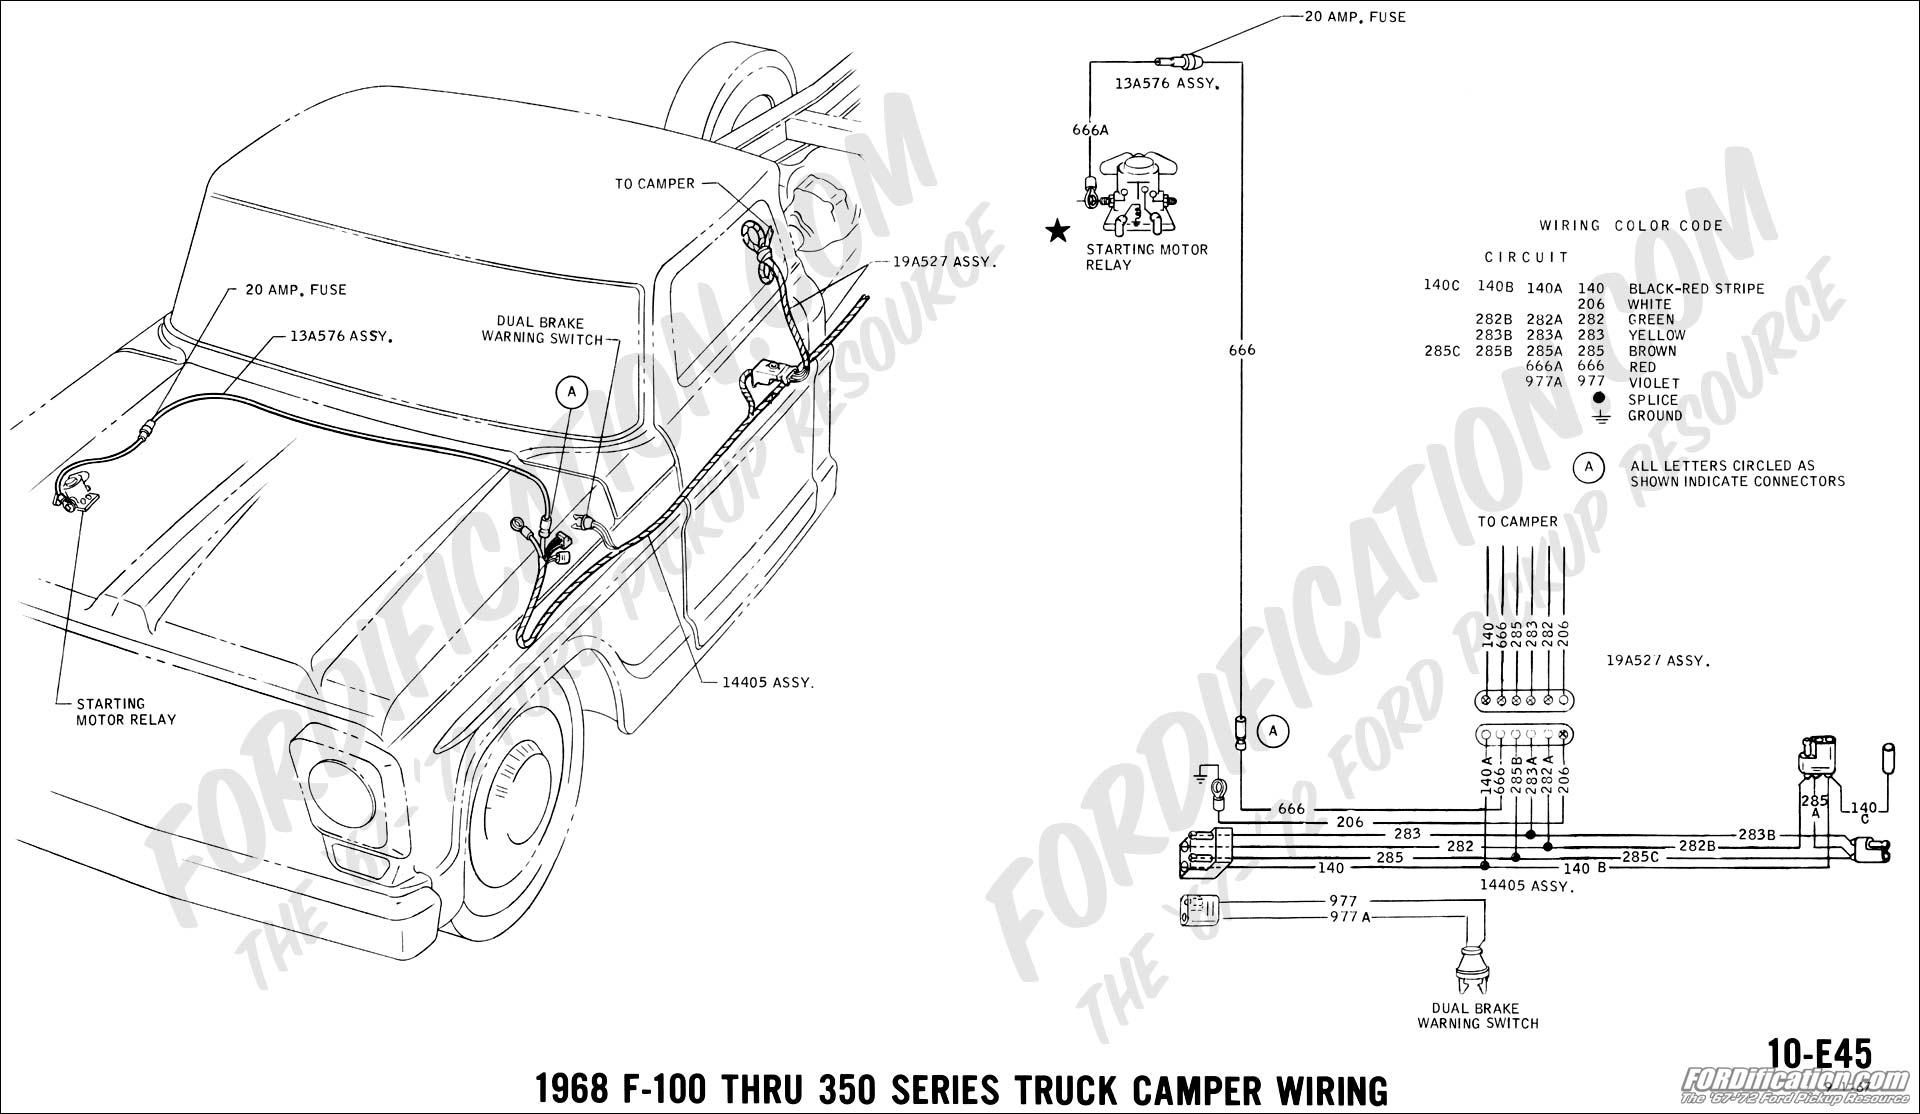 truck camper wiring harness ford truck technical drawings and schematics section h wiring 1968 f 100 thru f 350 camper